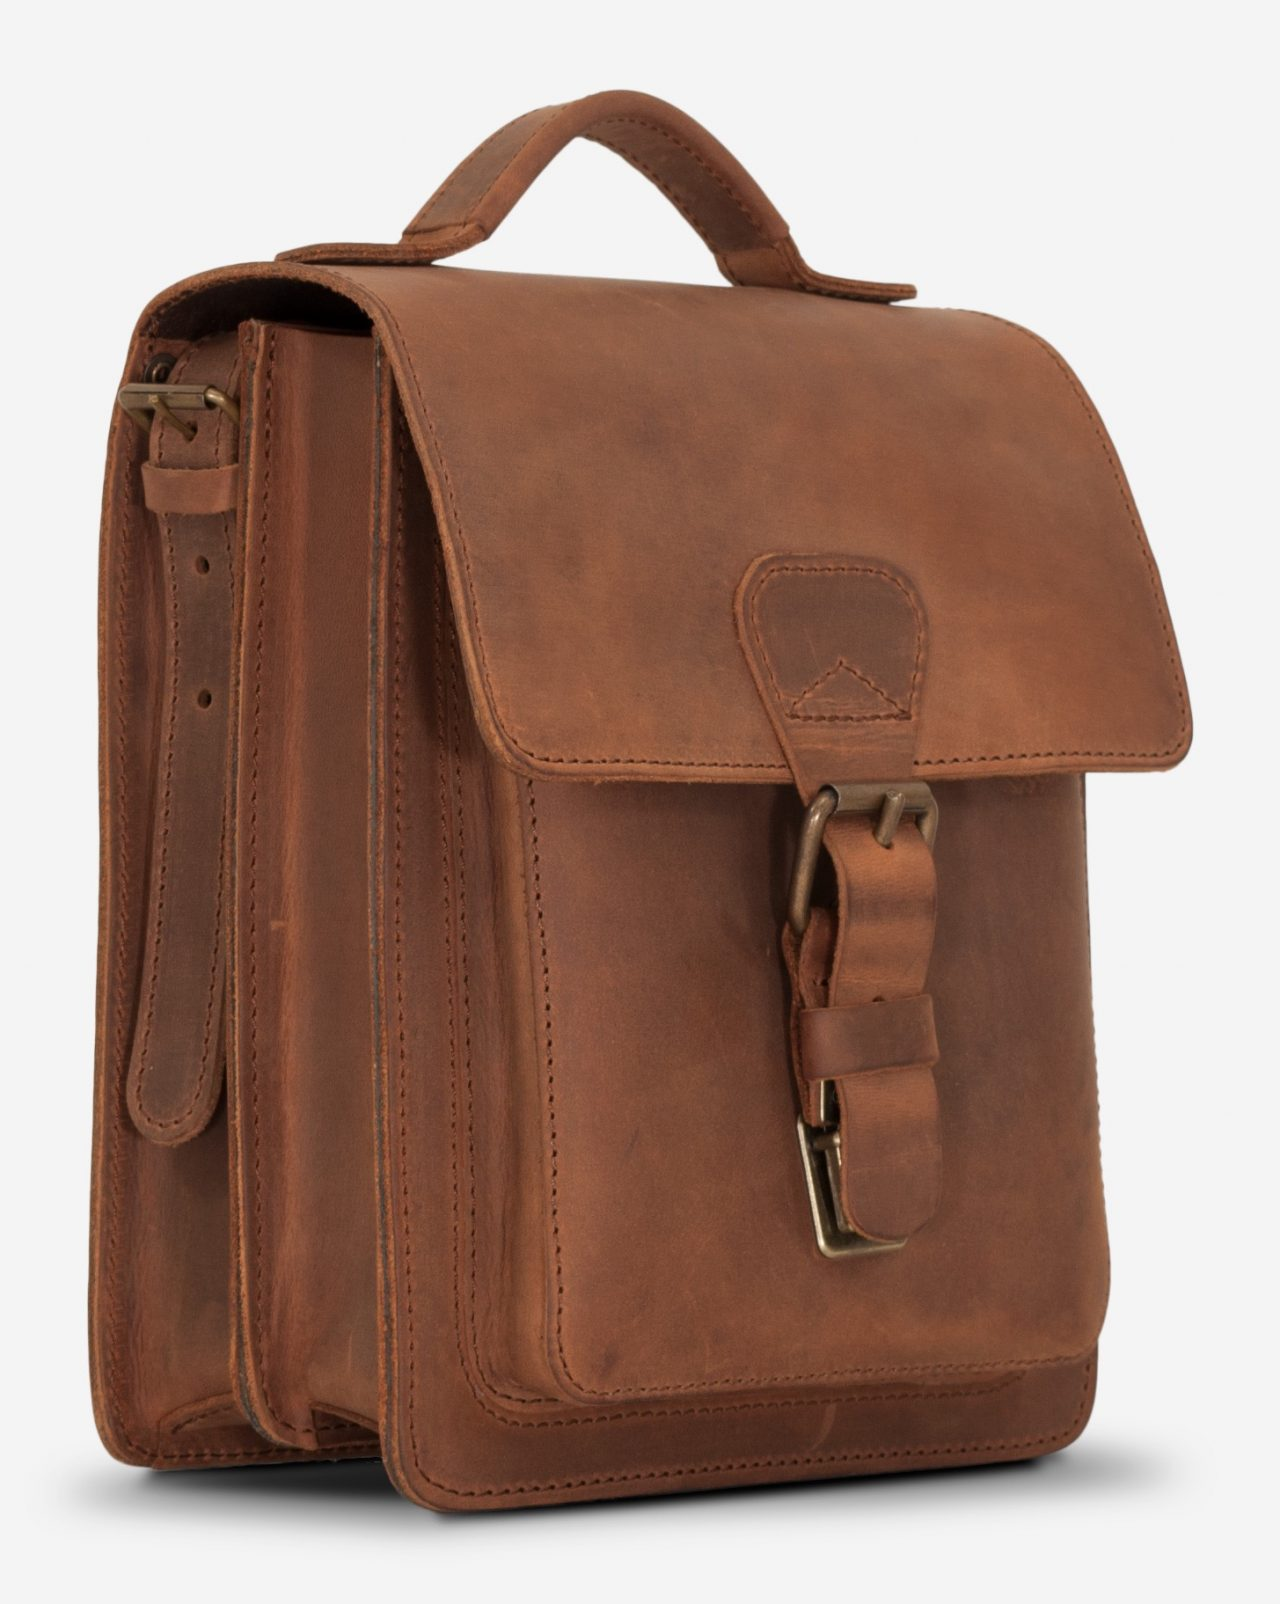 Side view of the handmade vegetable-tanned brown leather crossbody bag for men.